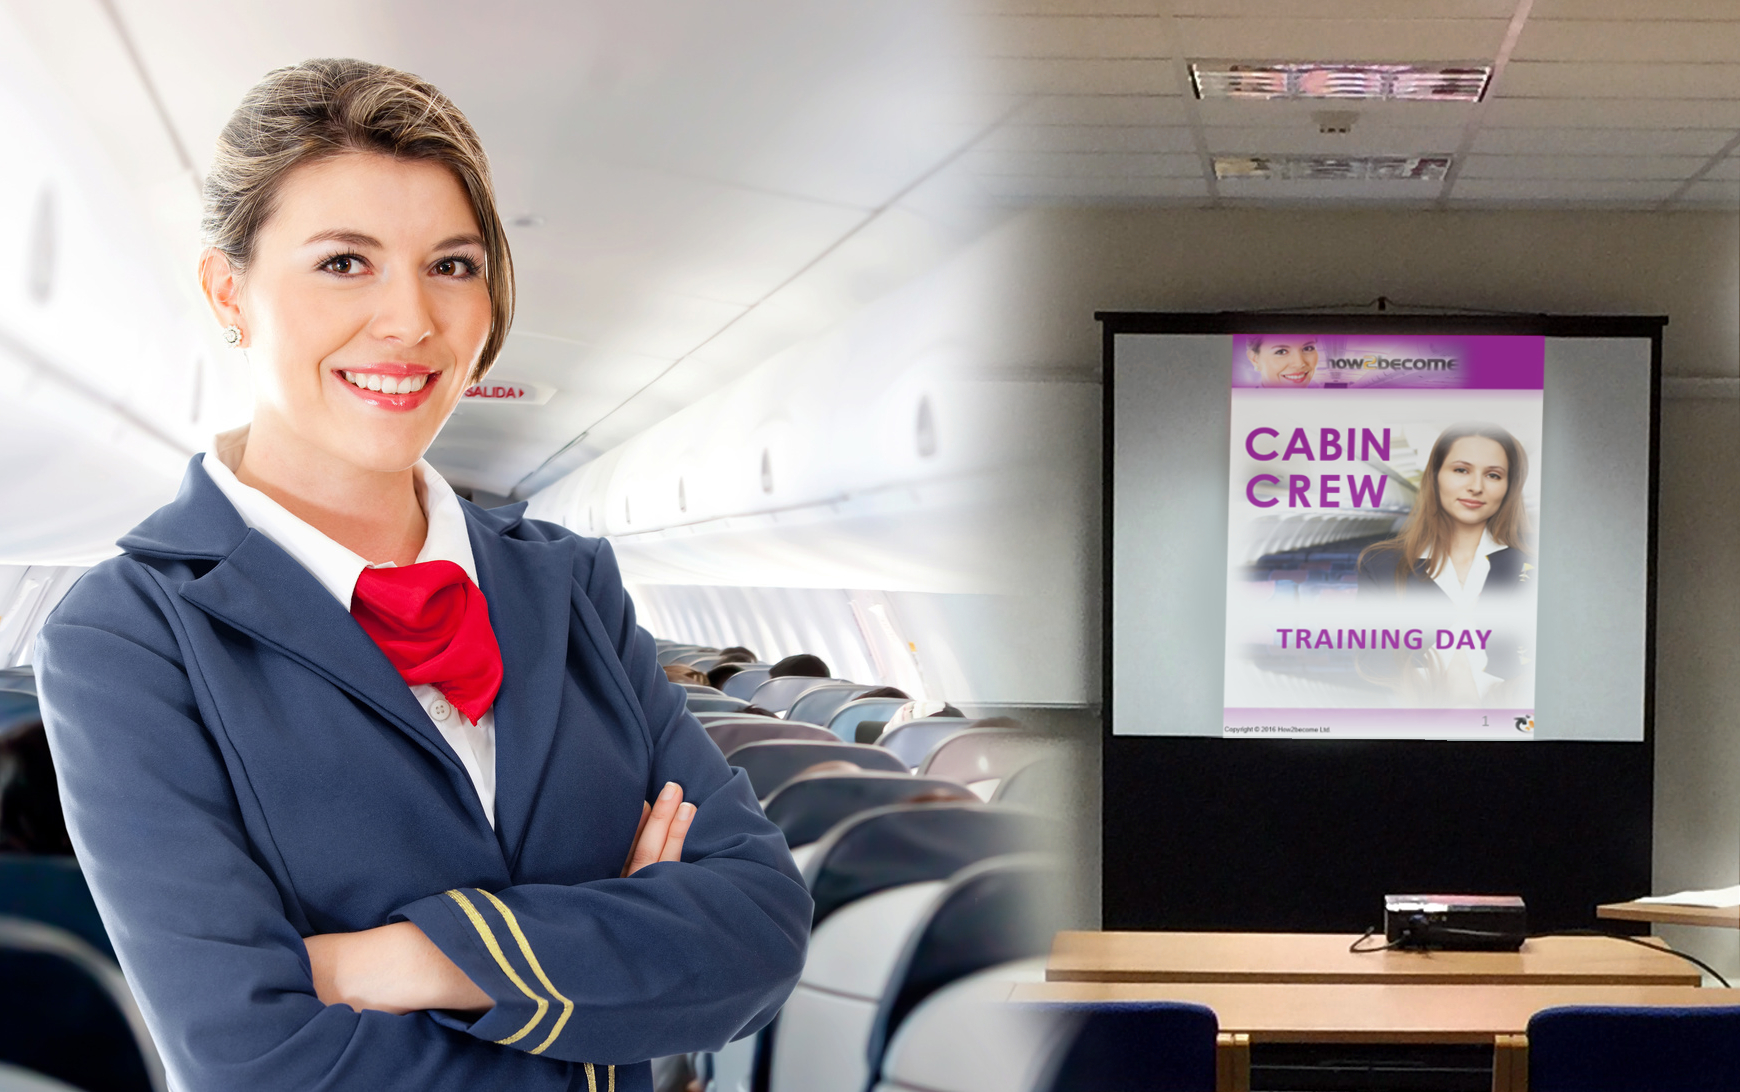 YOUR 1-2-1 Full-Day Cabin Crew Training Course